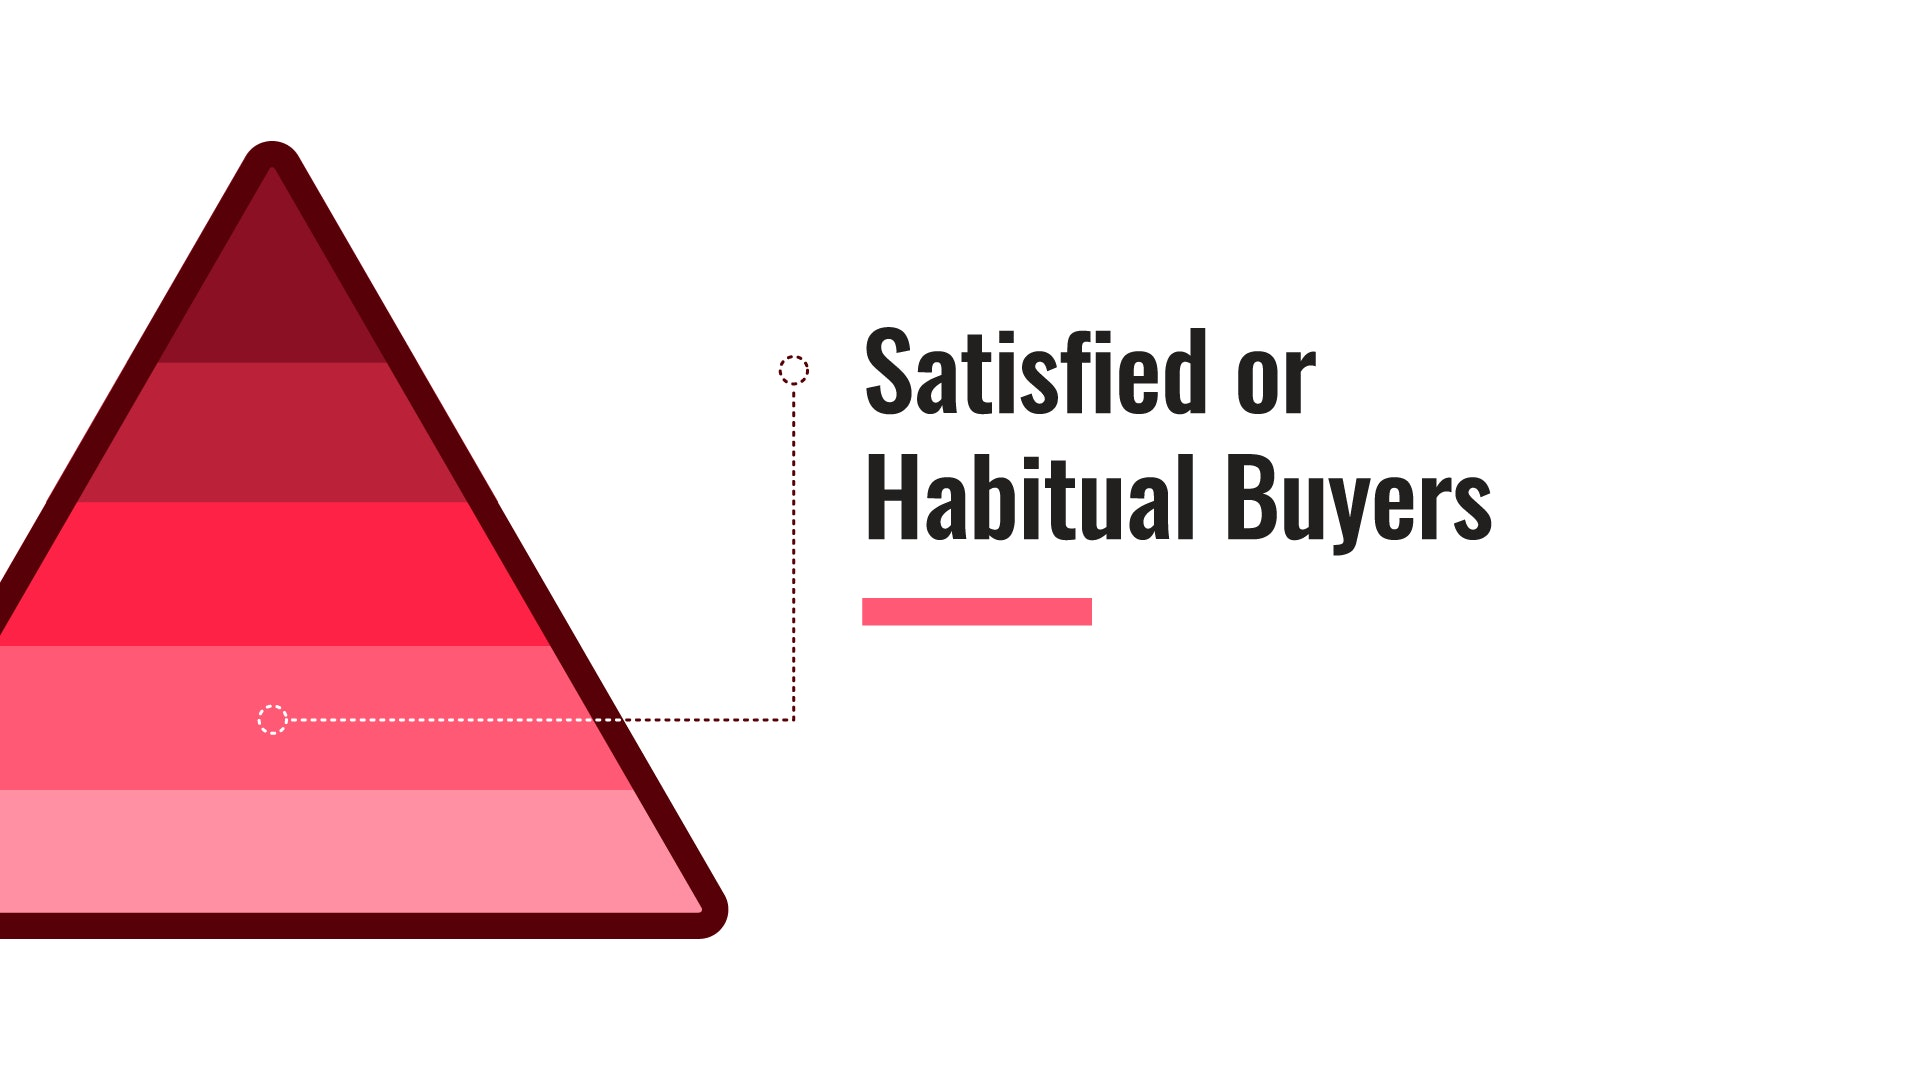 satisfied or habitual buyers graphic